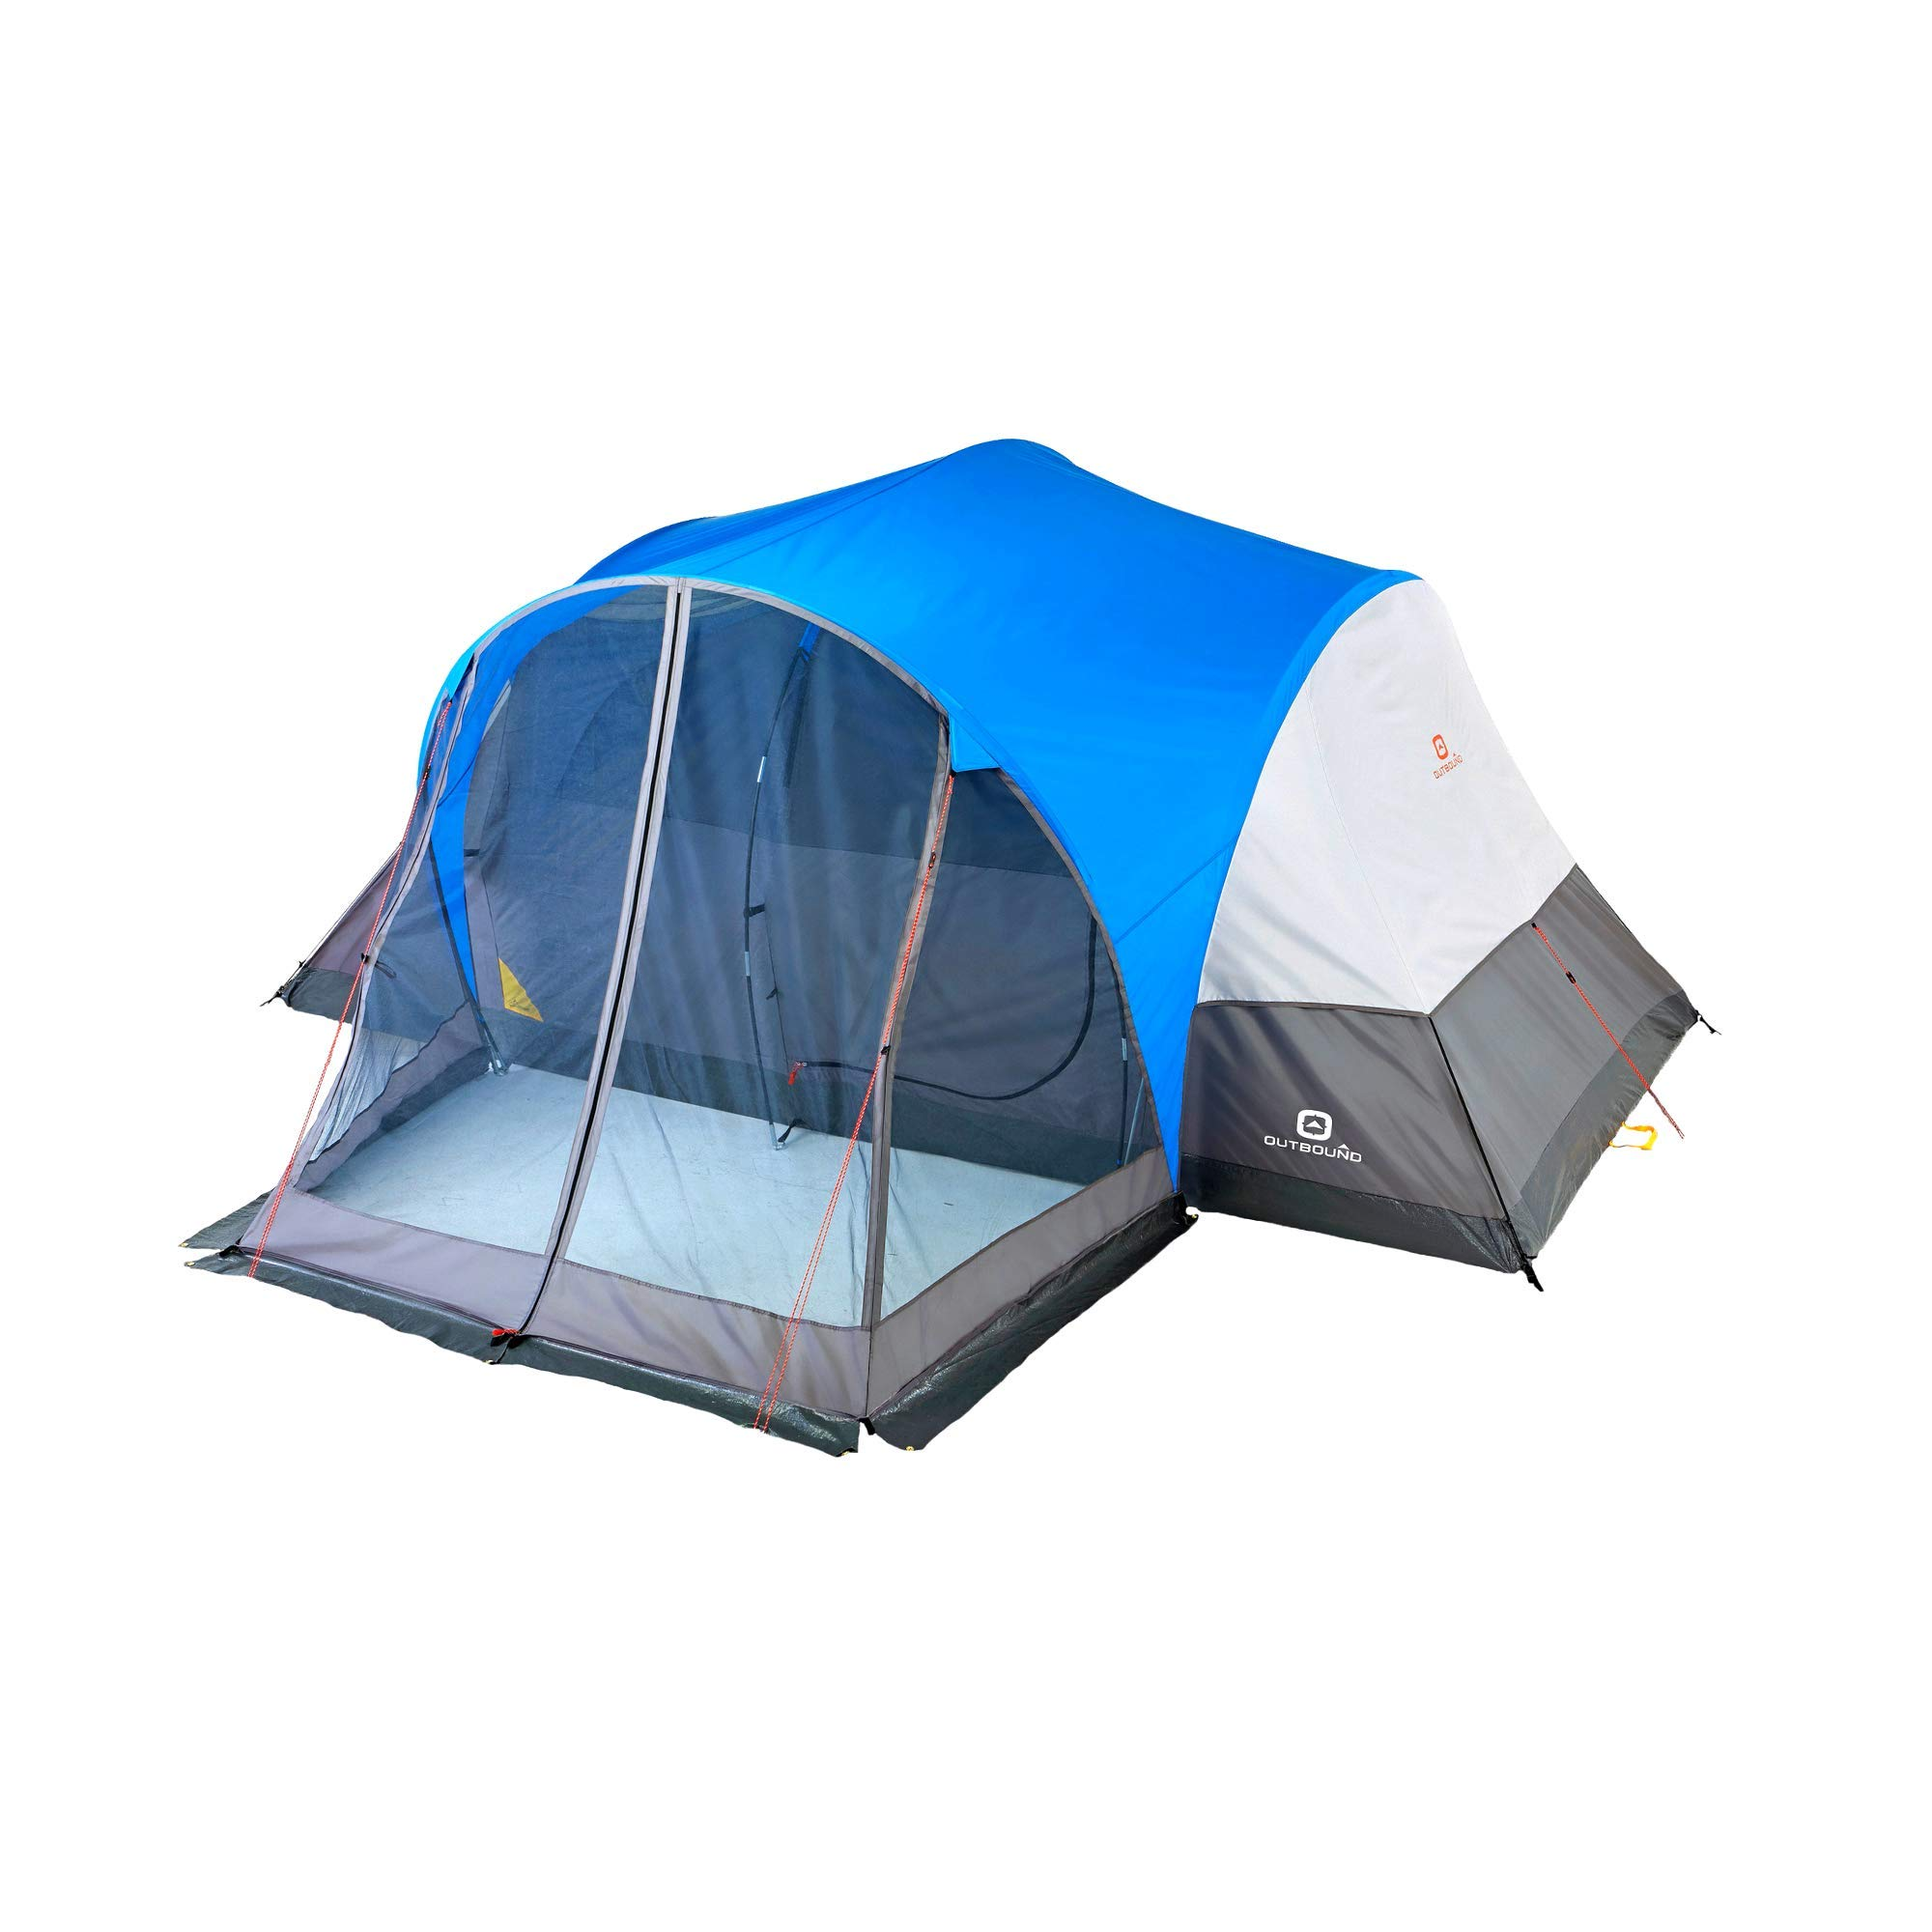 Outbound 8-Person Tent | Dome Tent for Camping with Screen Porch and Carry Bag| Perfect for Backpacking and The Beach | Blue by Outbound